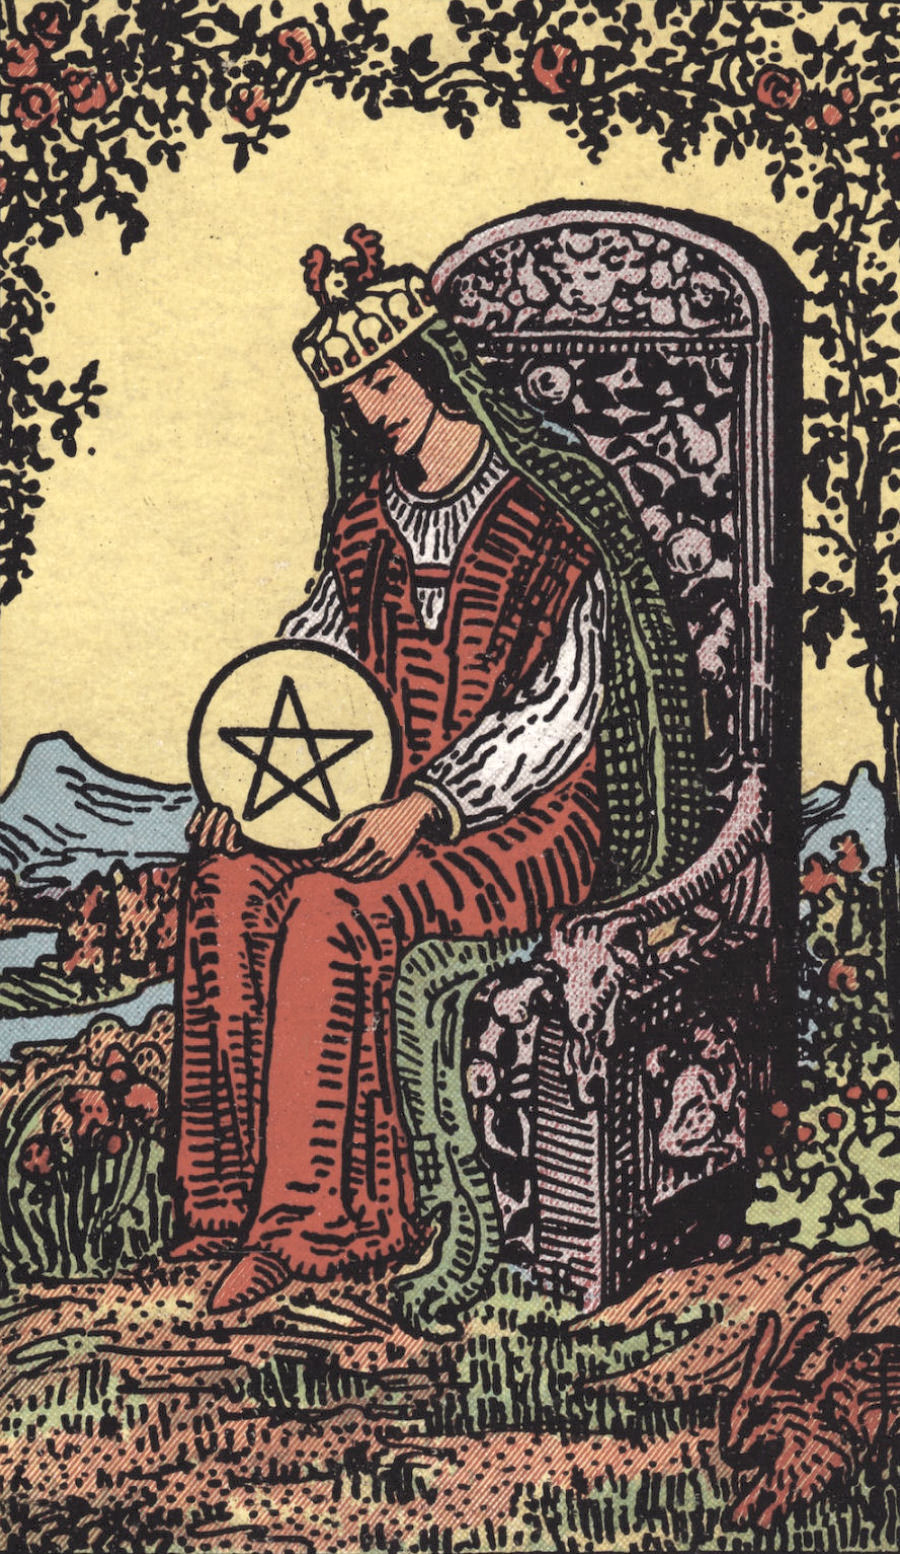 Rider Waite Smith Queen of Pentacles Tarot Card Meaning